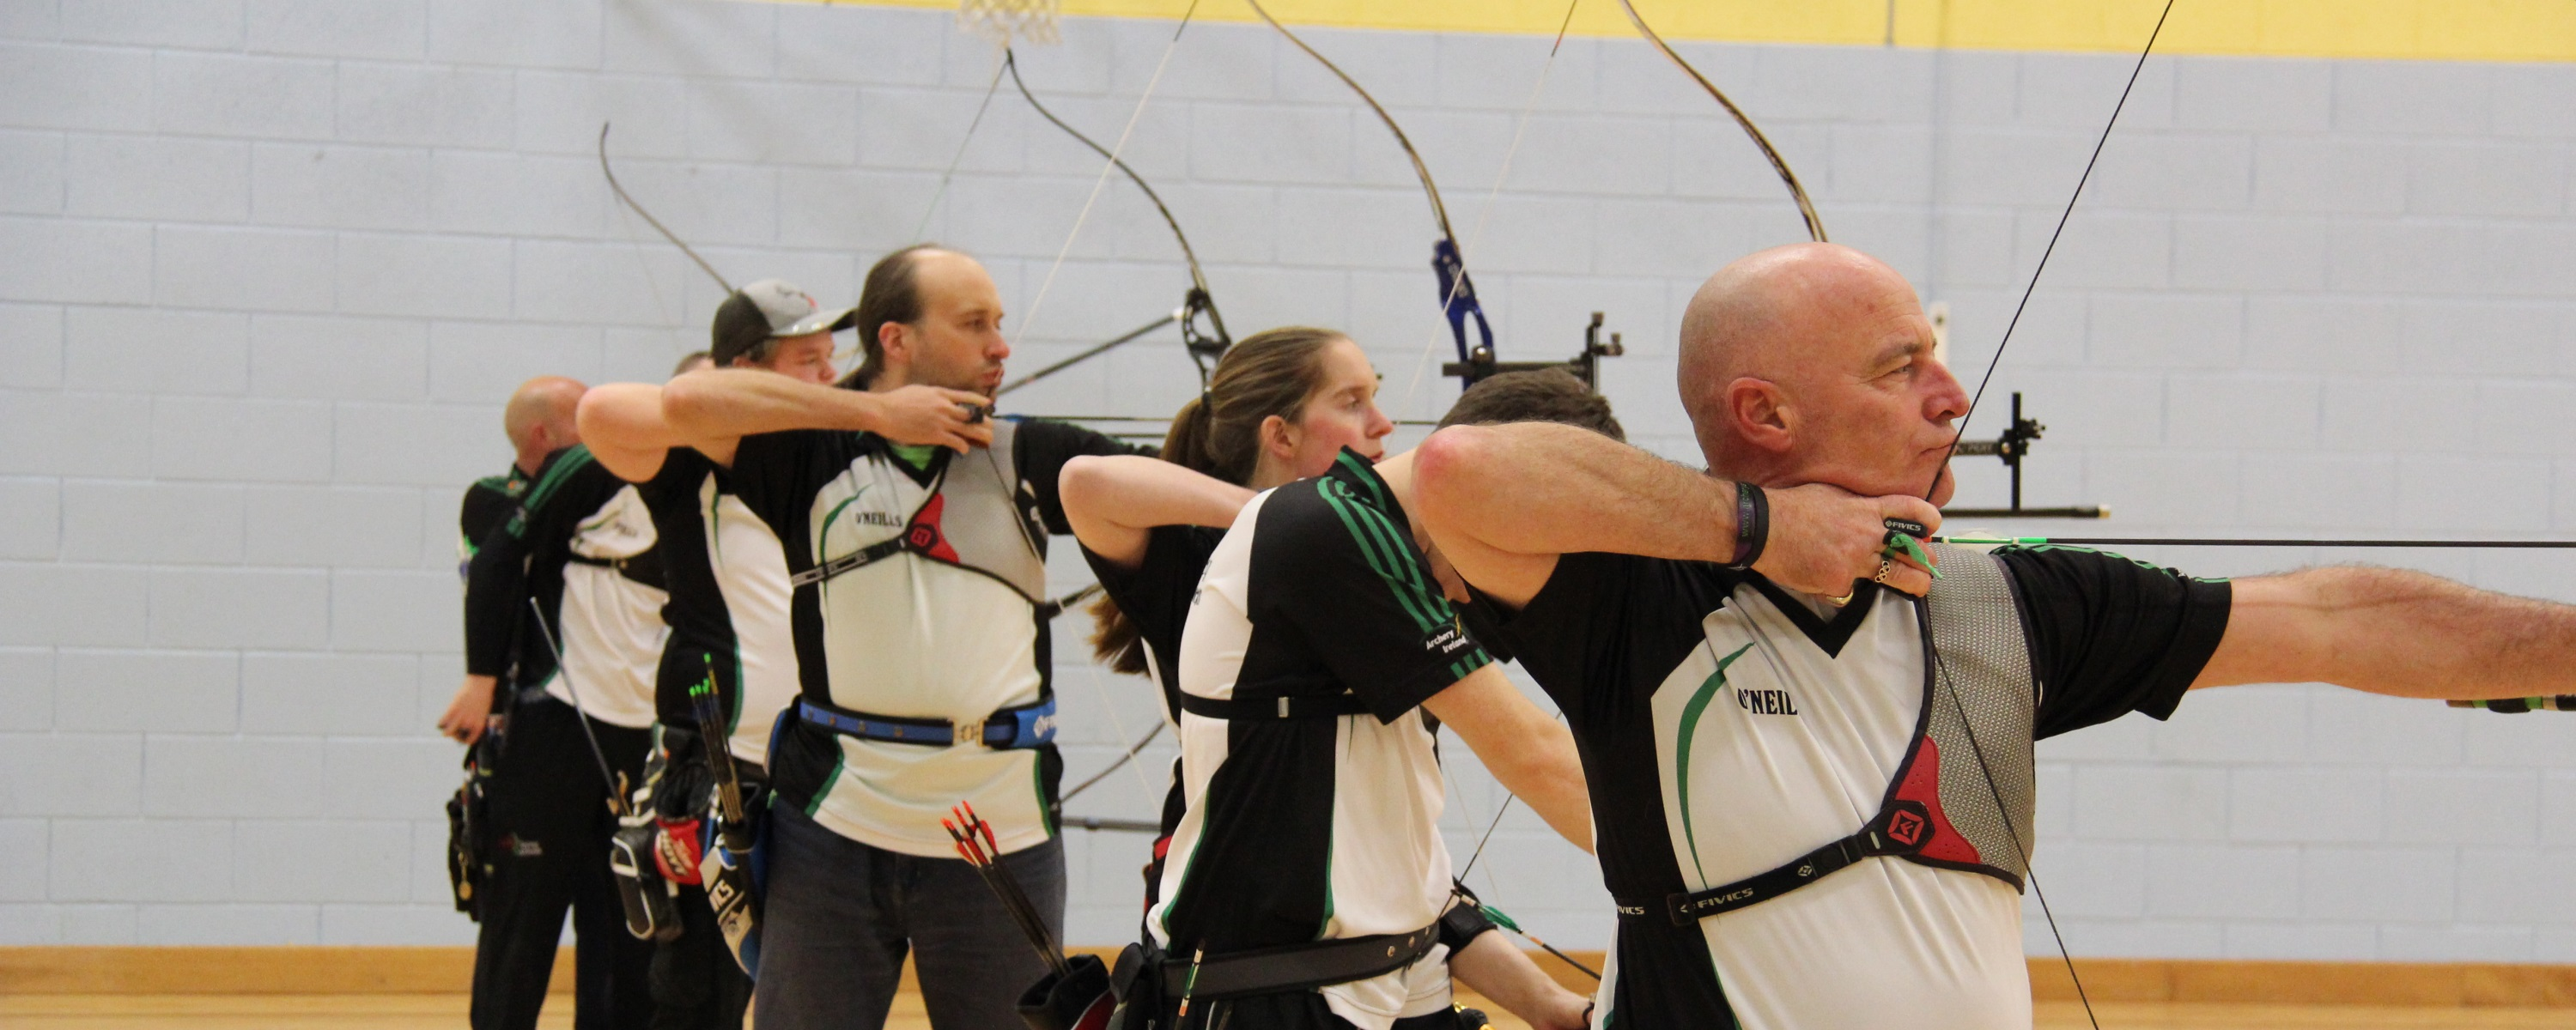 Archers at full Draw......